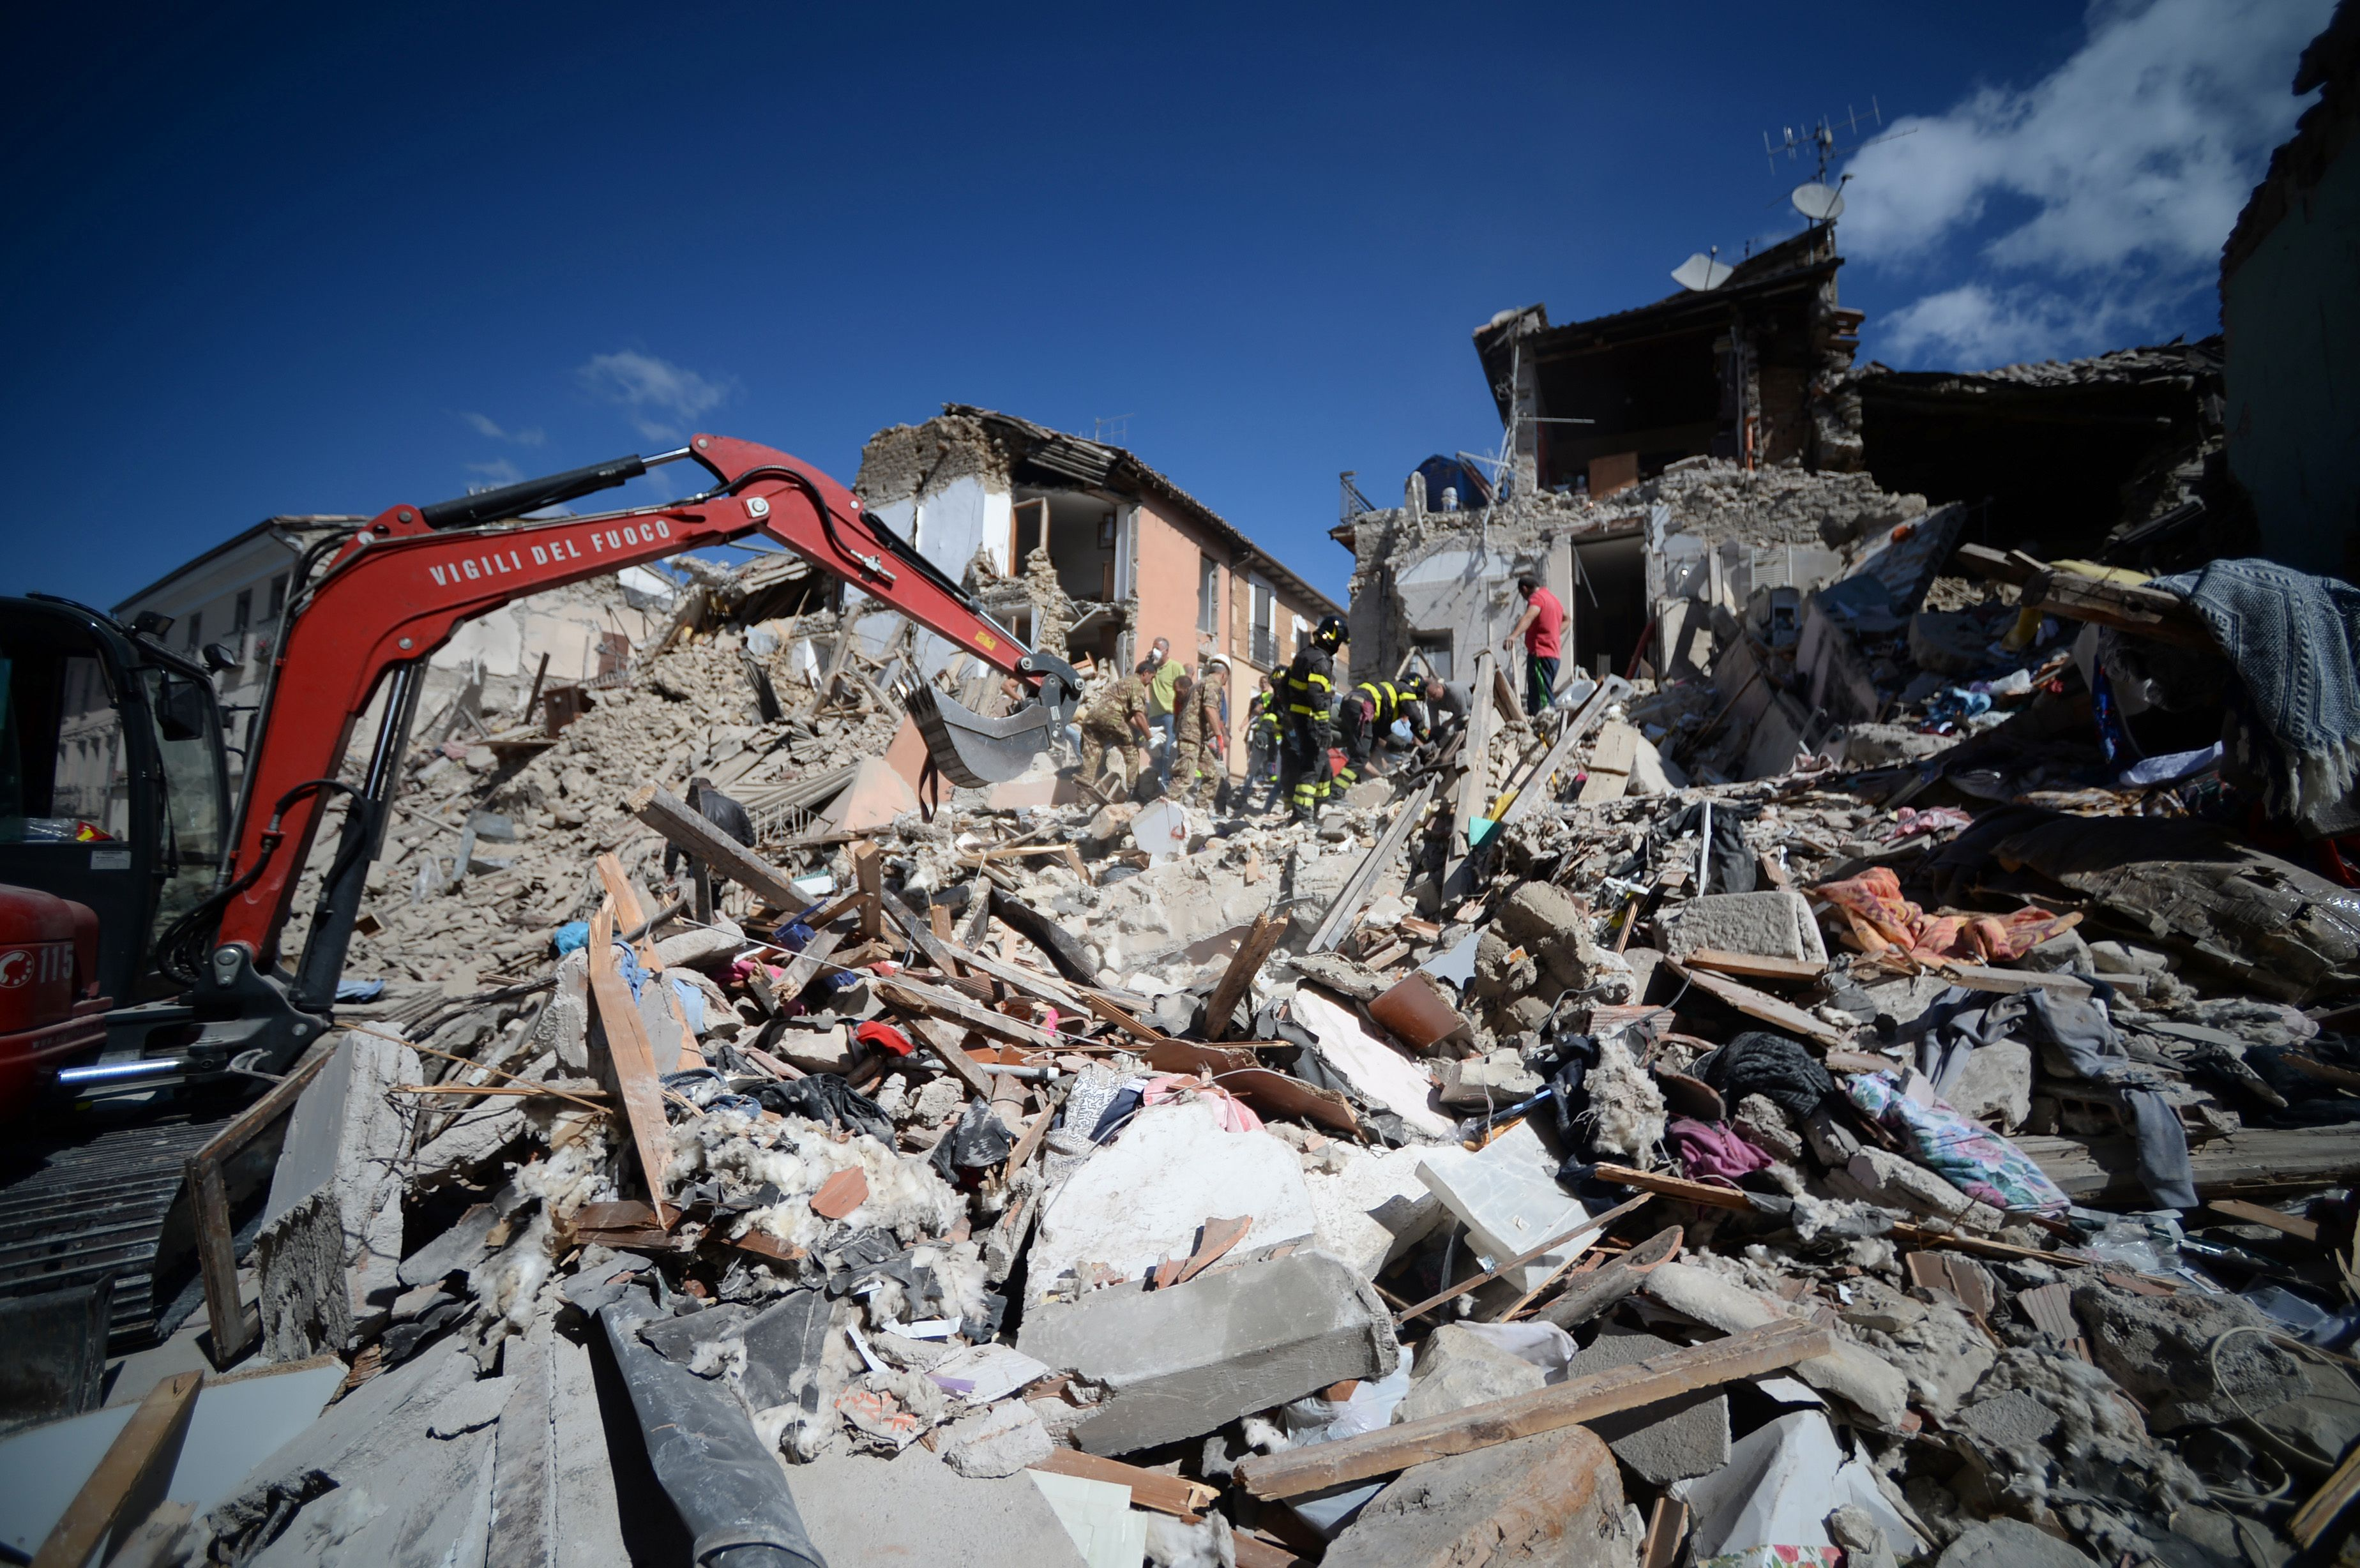 Italy quake toll rises to nearly 250 as rescuers struggle to find survivors